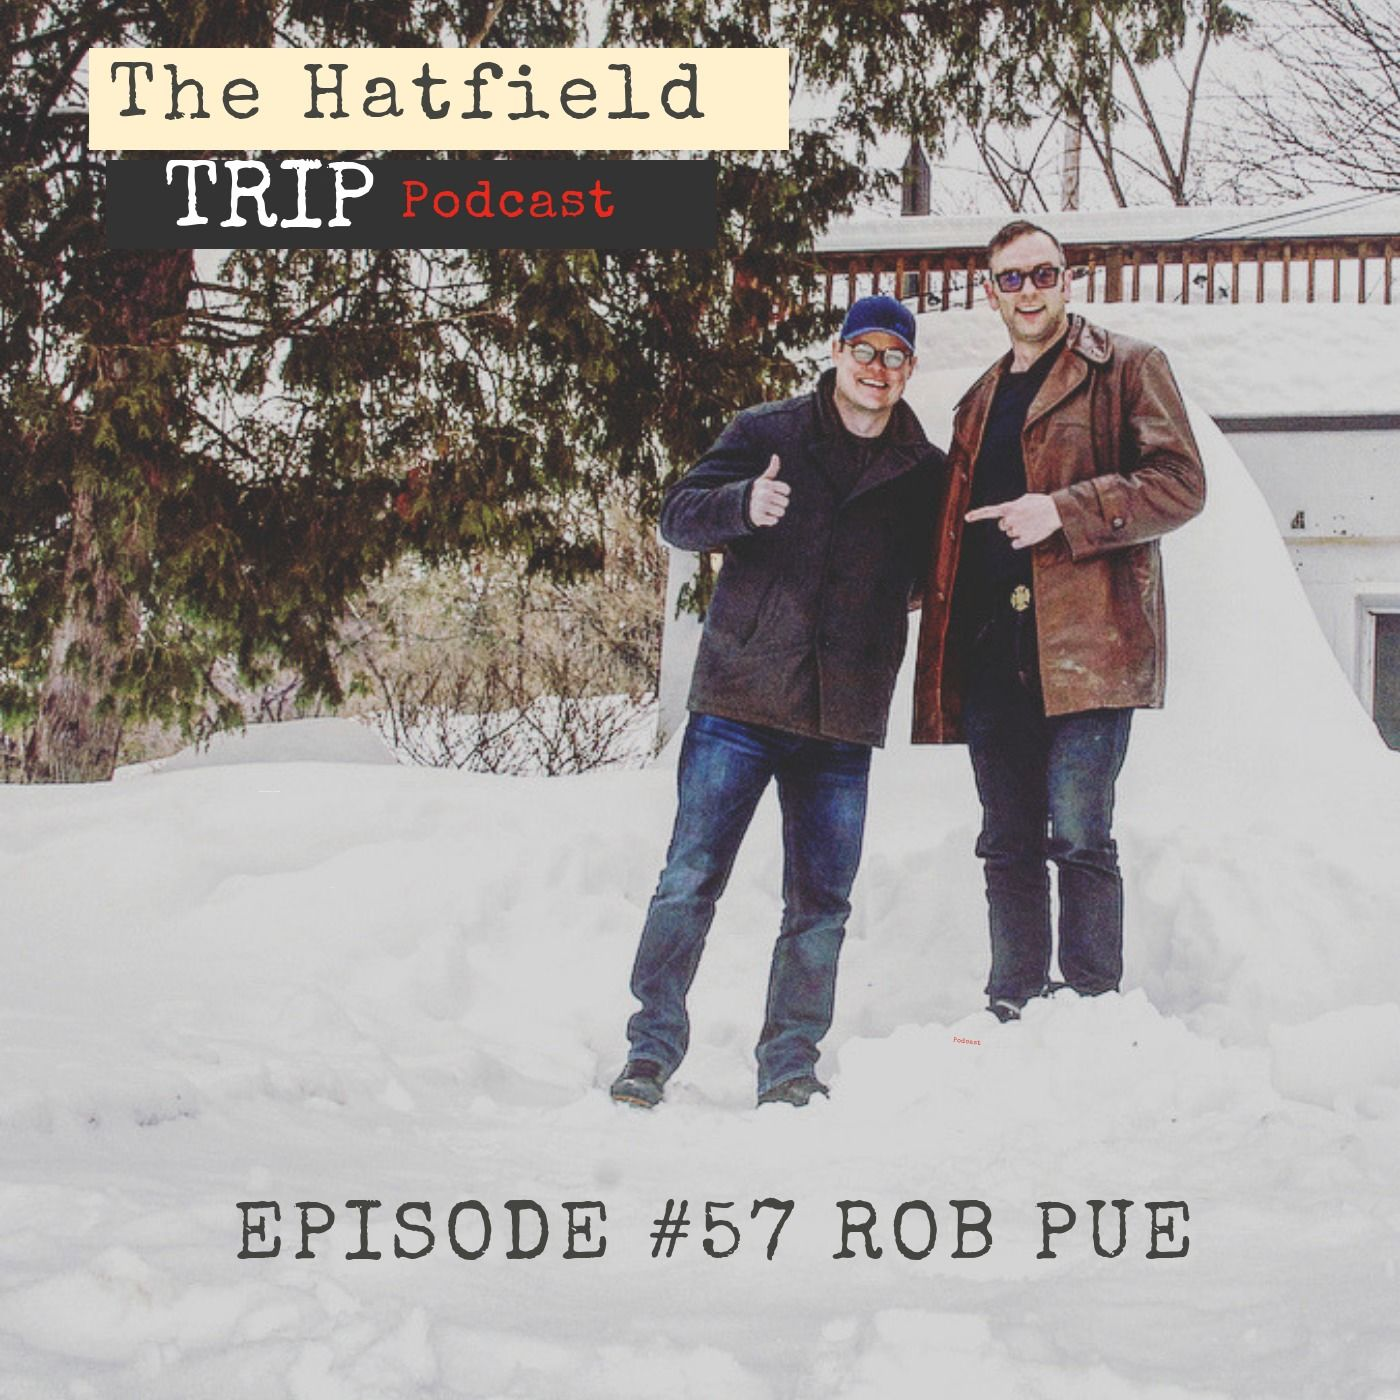 Episode #57 Rob Pue